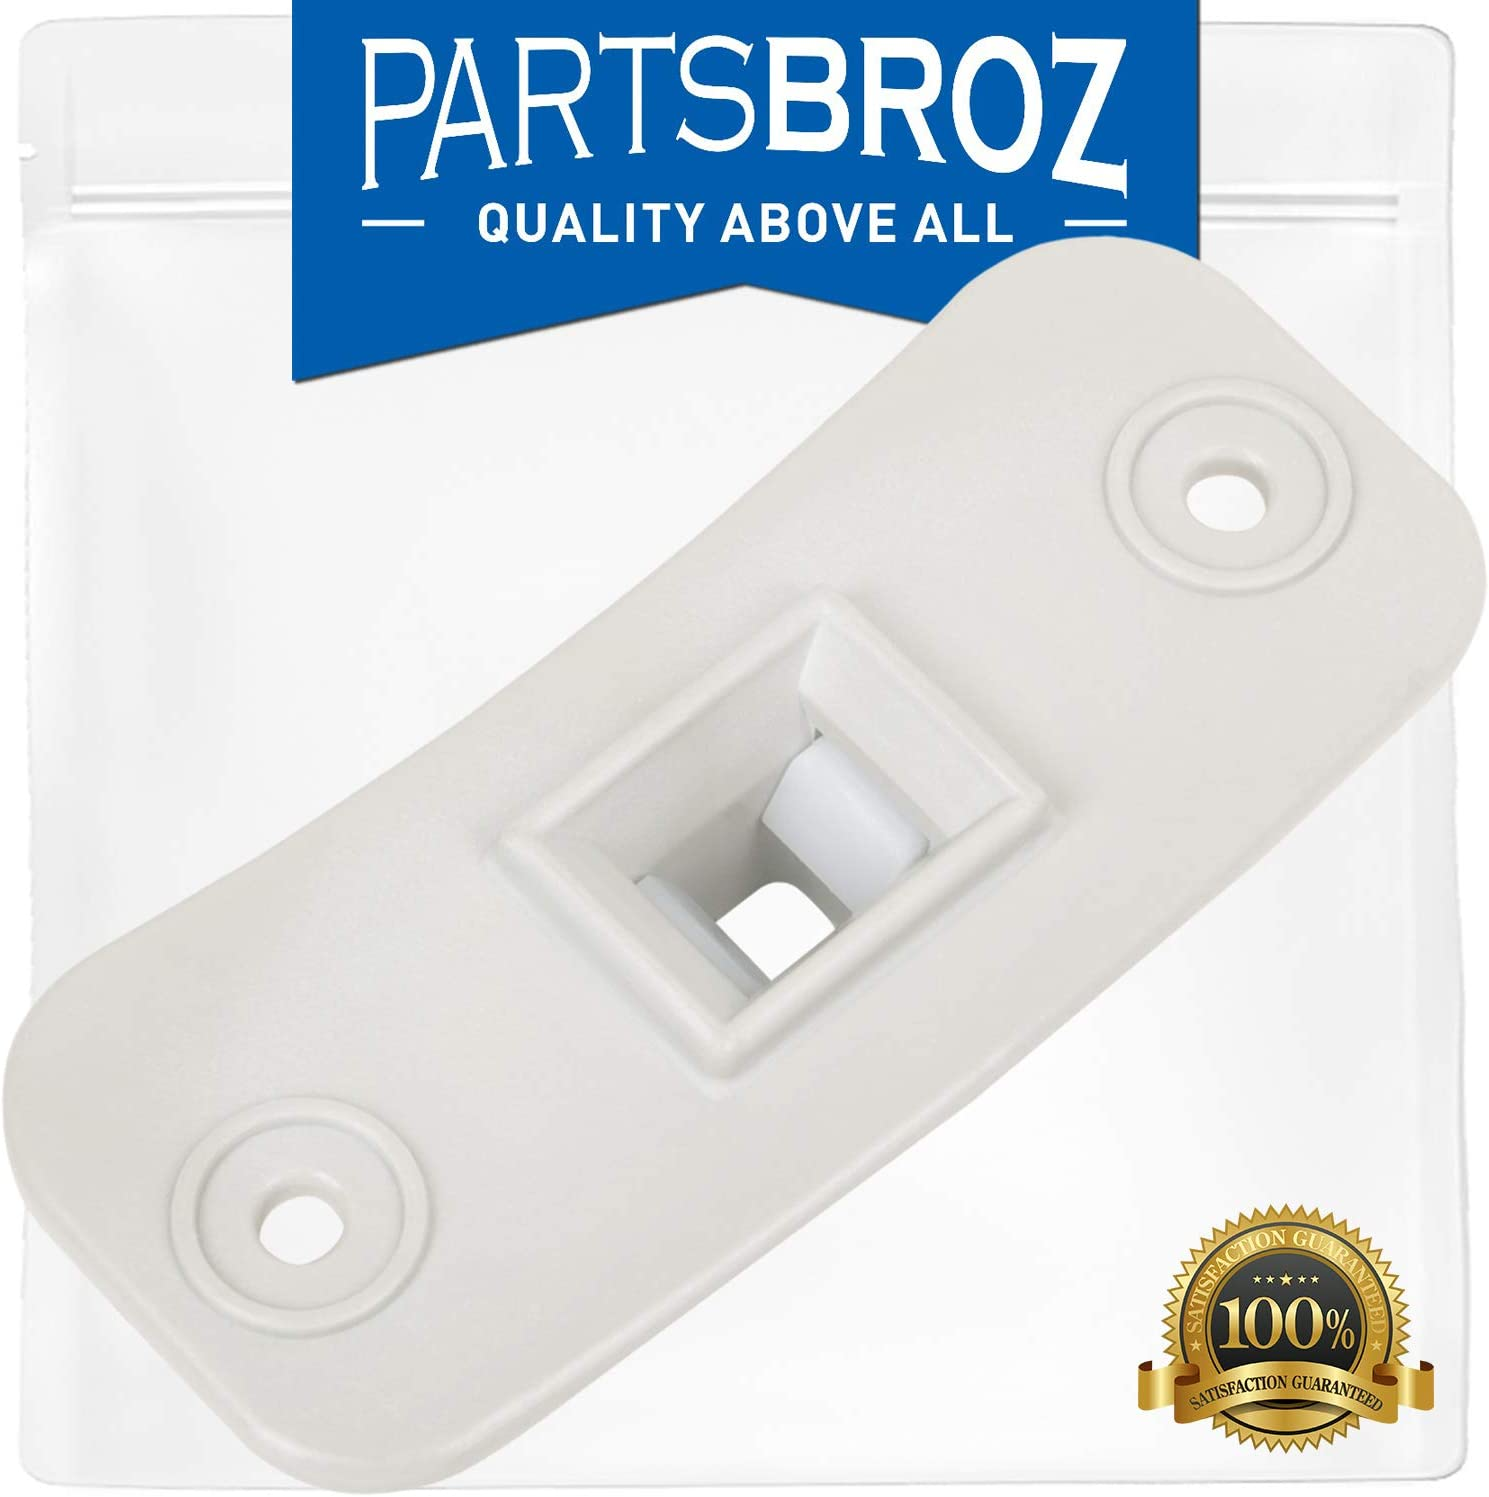 4027EL1001A Door Latch Assembly for LG Dryers by PartsBroz - Replaces Part Numbers AP4437430, 1266807, AH3522843, EA3522843, PS3522843